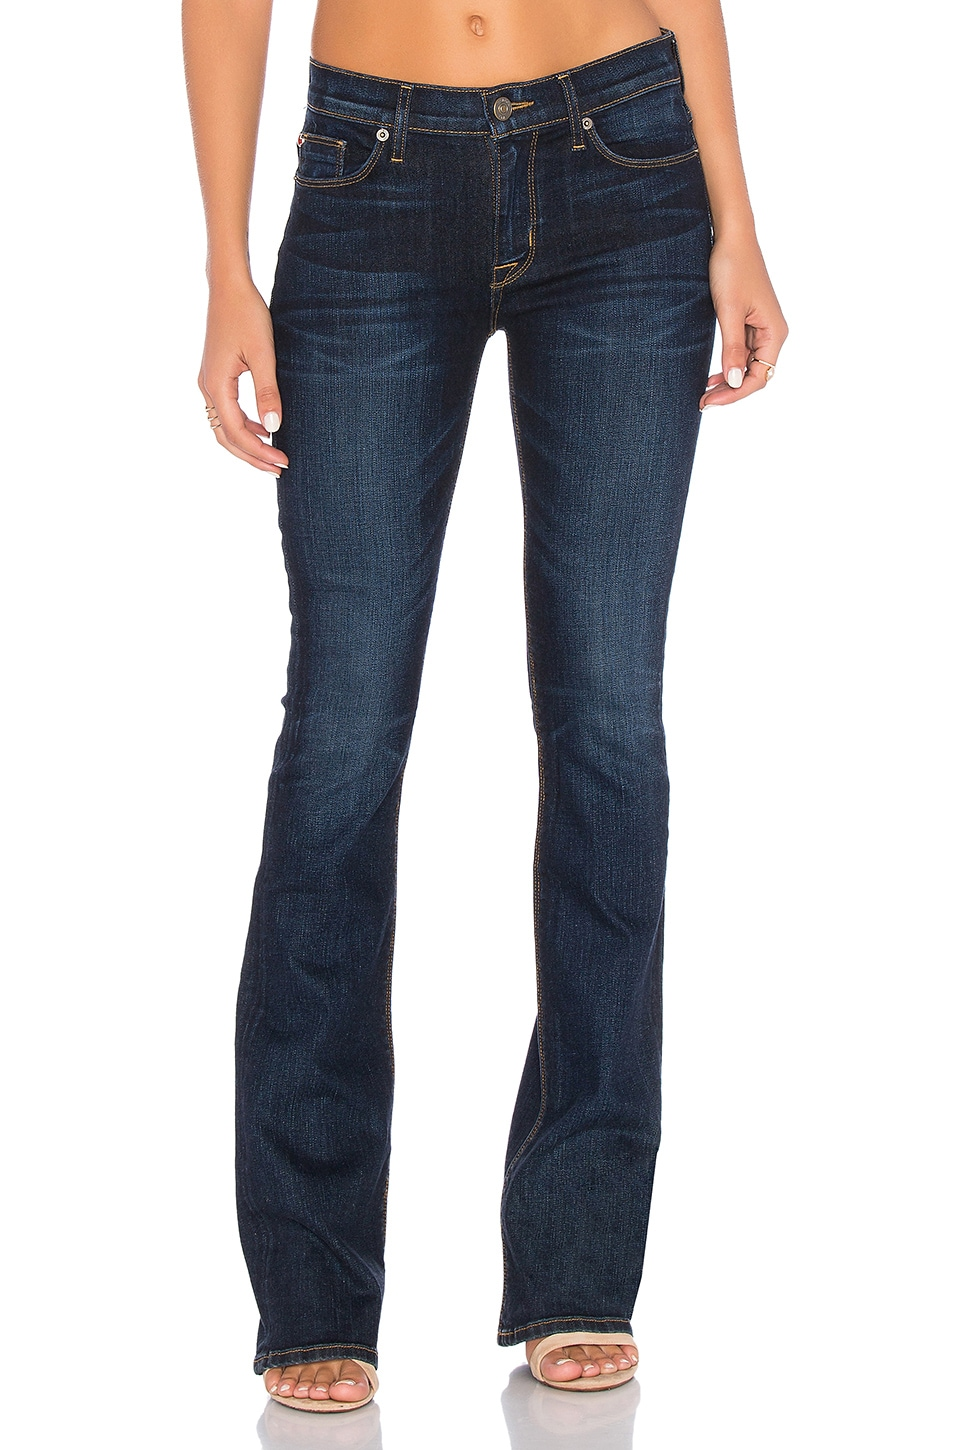 Love Mid Rise Bootcut by Hudson Jeans